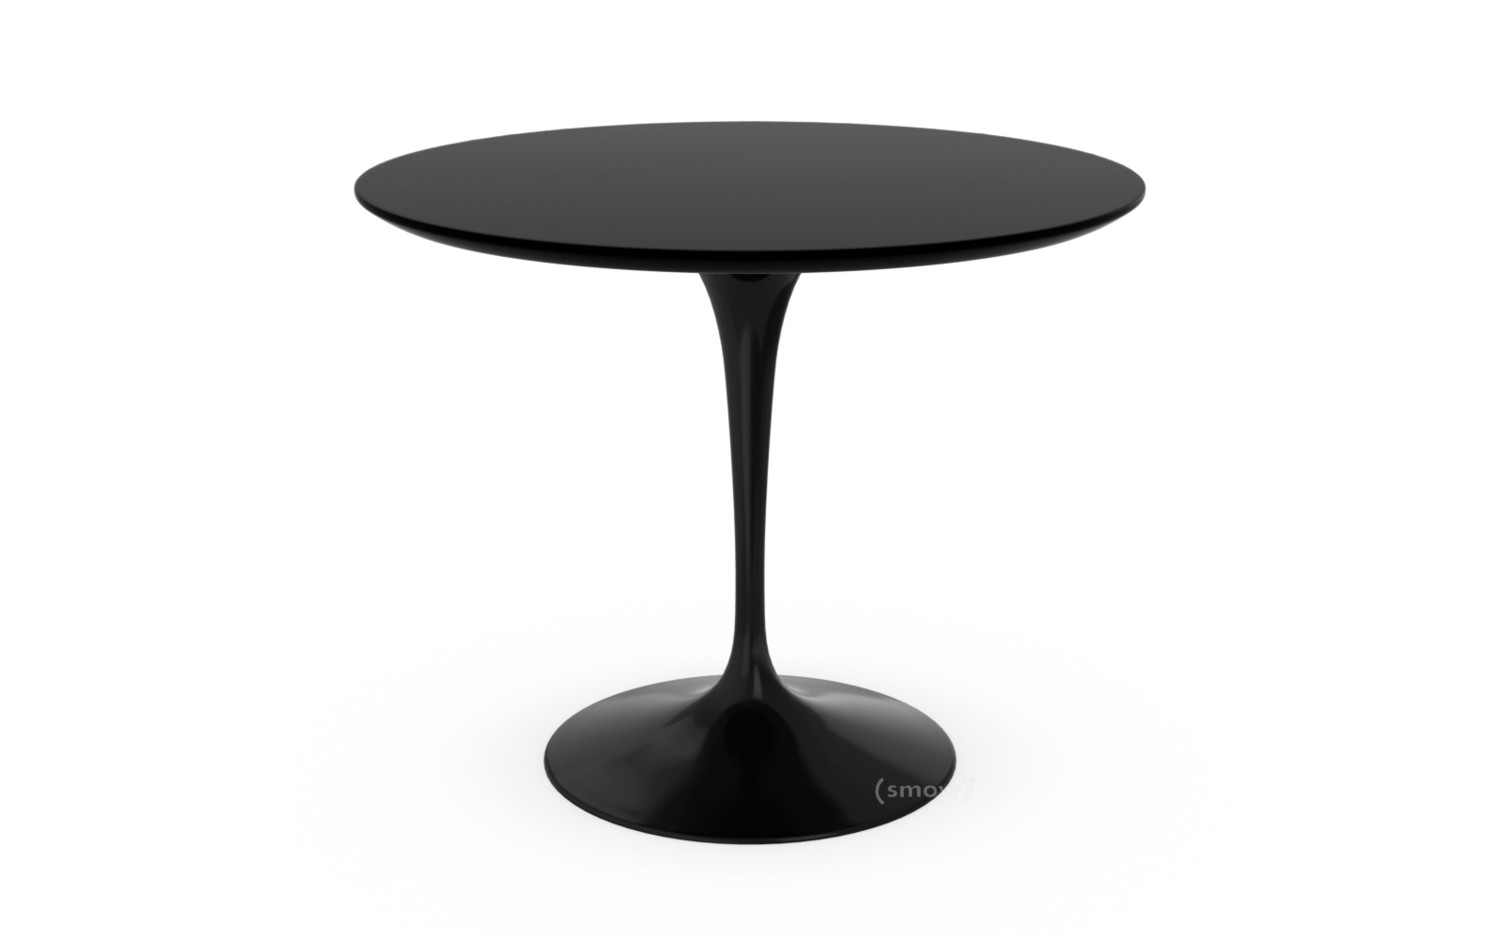 Knoll International Saarinen Round Dining Table 91 Cm Black Laminate Black By Eero Saarinen 1955 1957 Designer Furniture By Smow Com